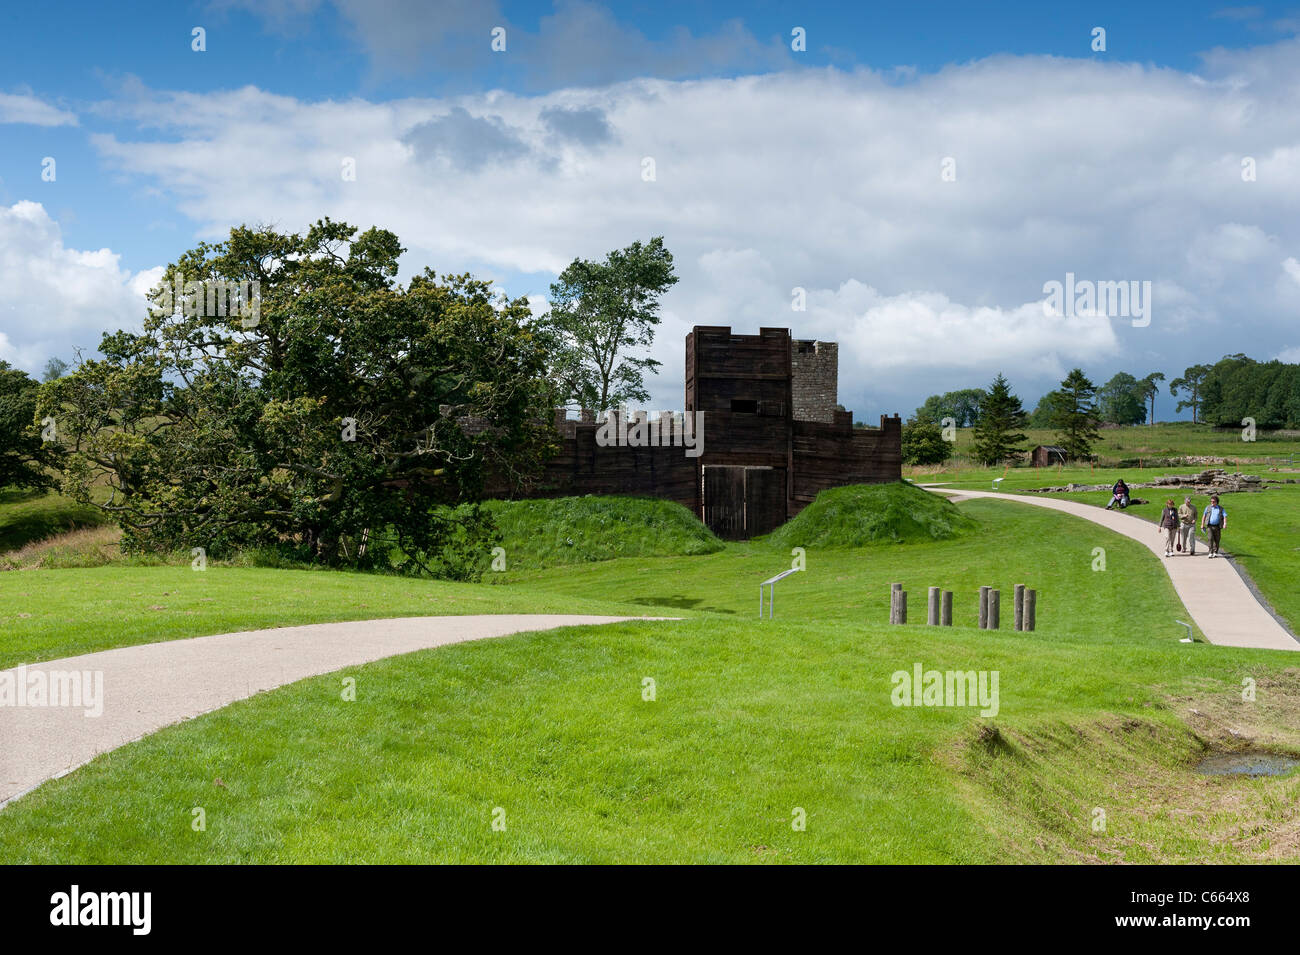 Vindolanda Roman Fort includes reconstructions to give an idea of the appearance of roman fortifications. - Stock Image